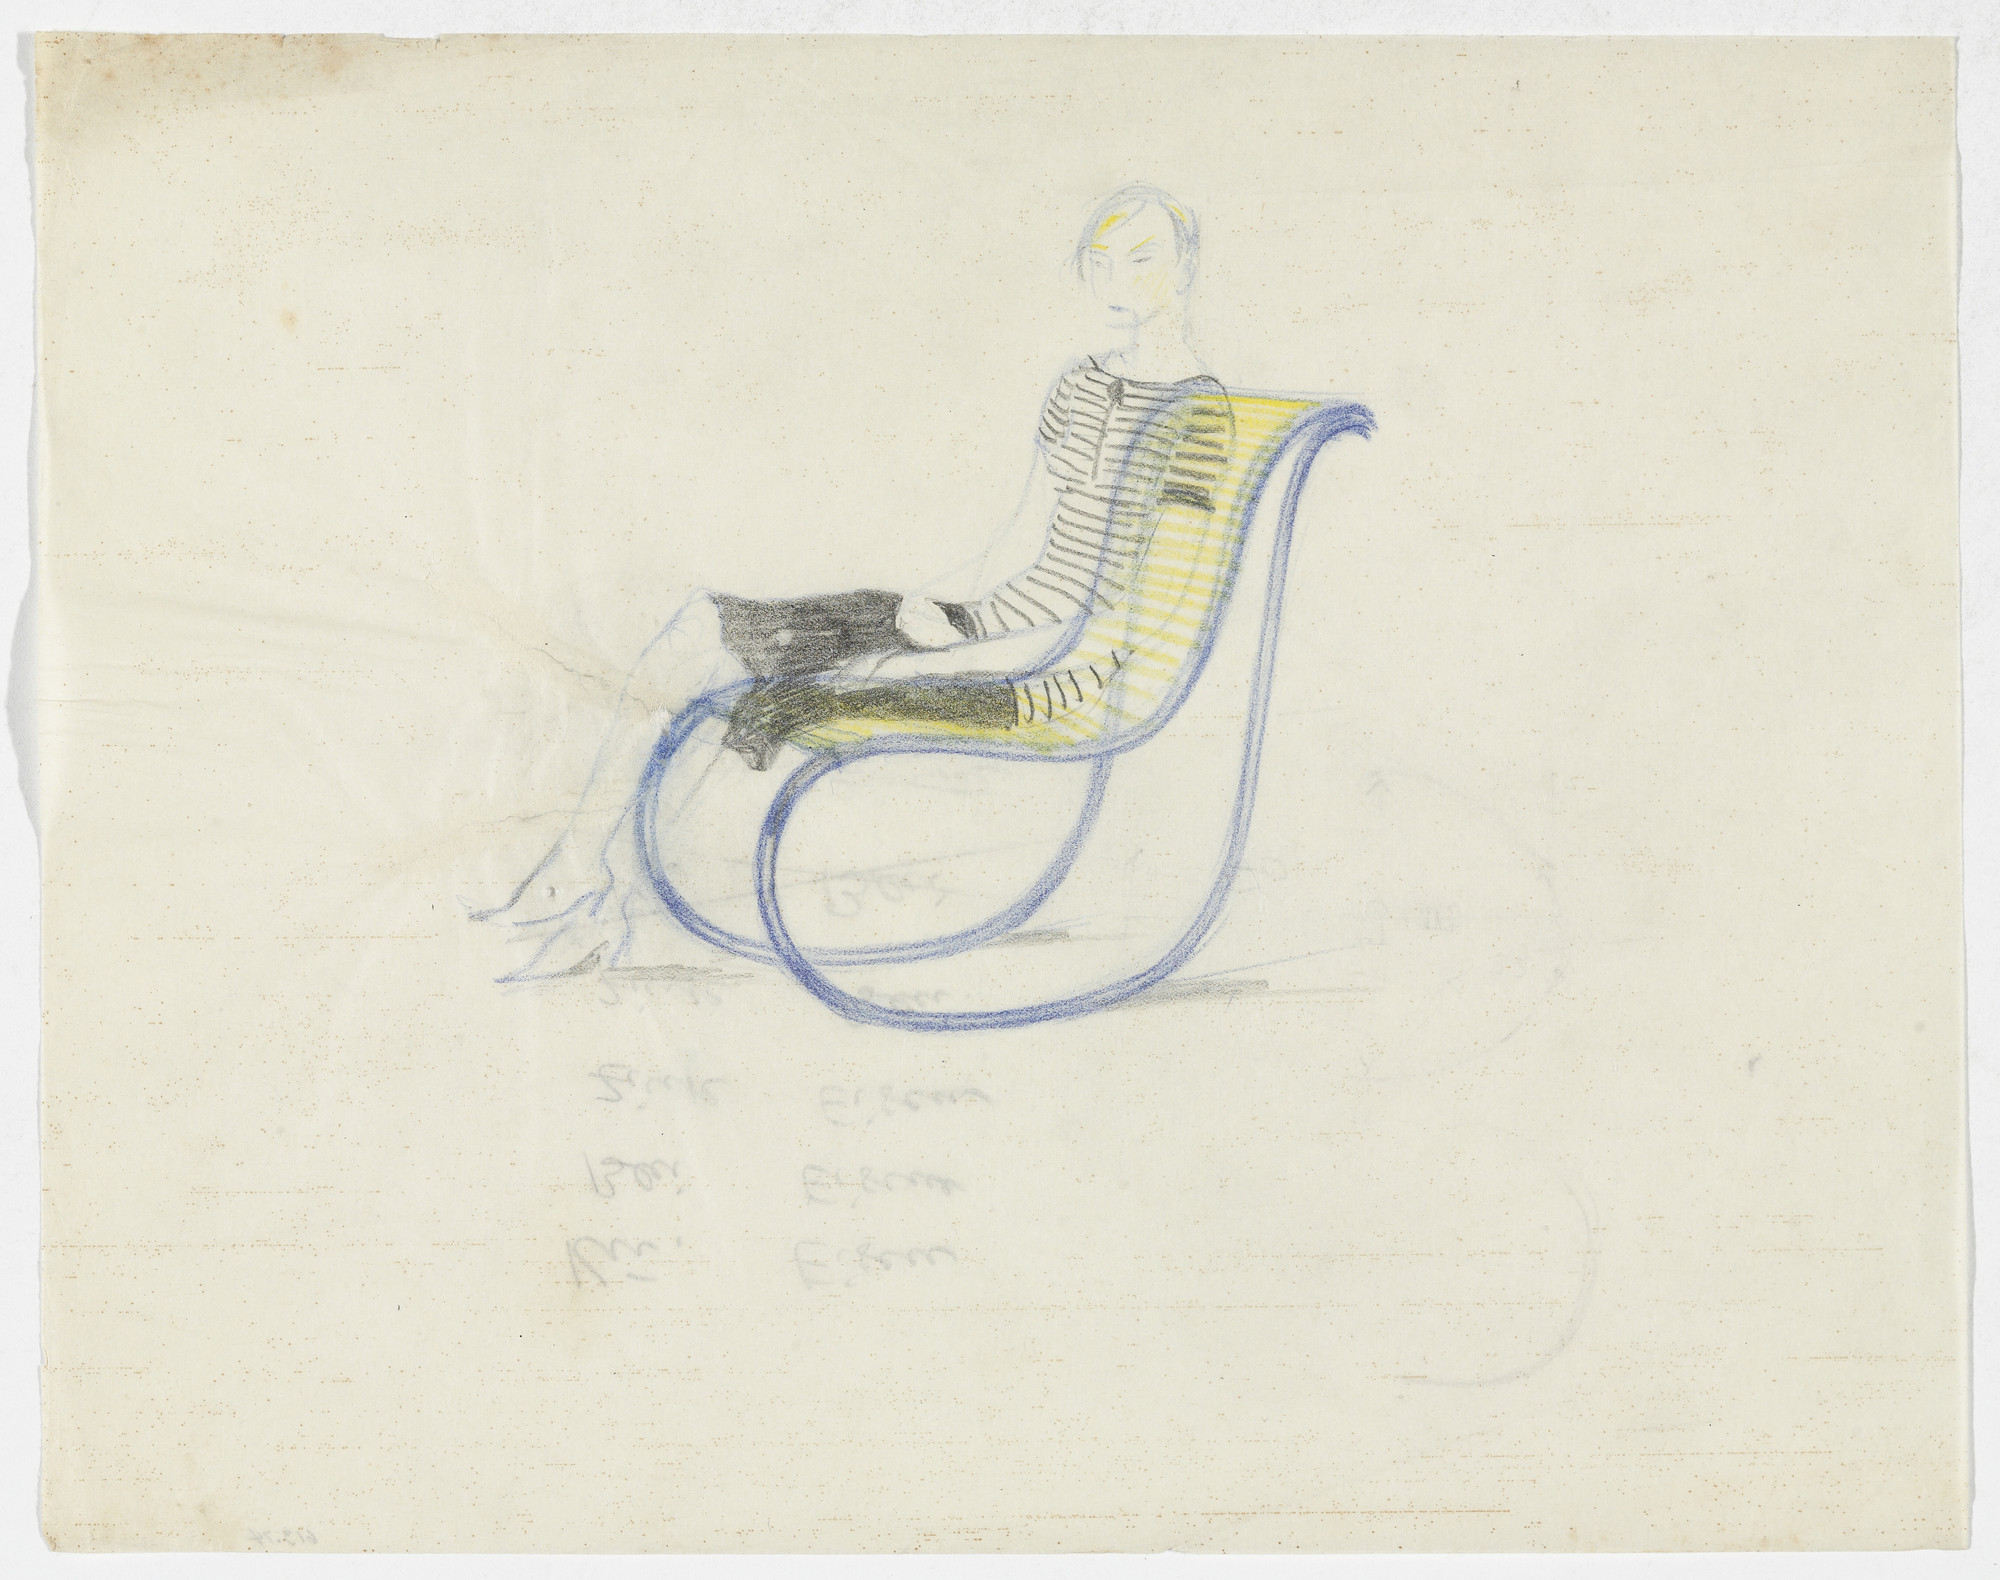 Ludwig Mies van der Rohe. Lounge Chair without Arms, with Figure. 1934